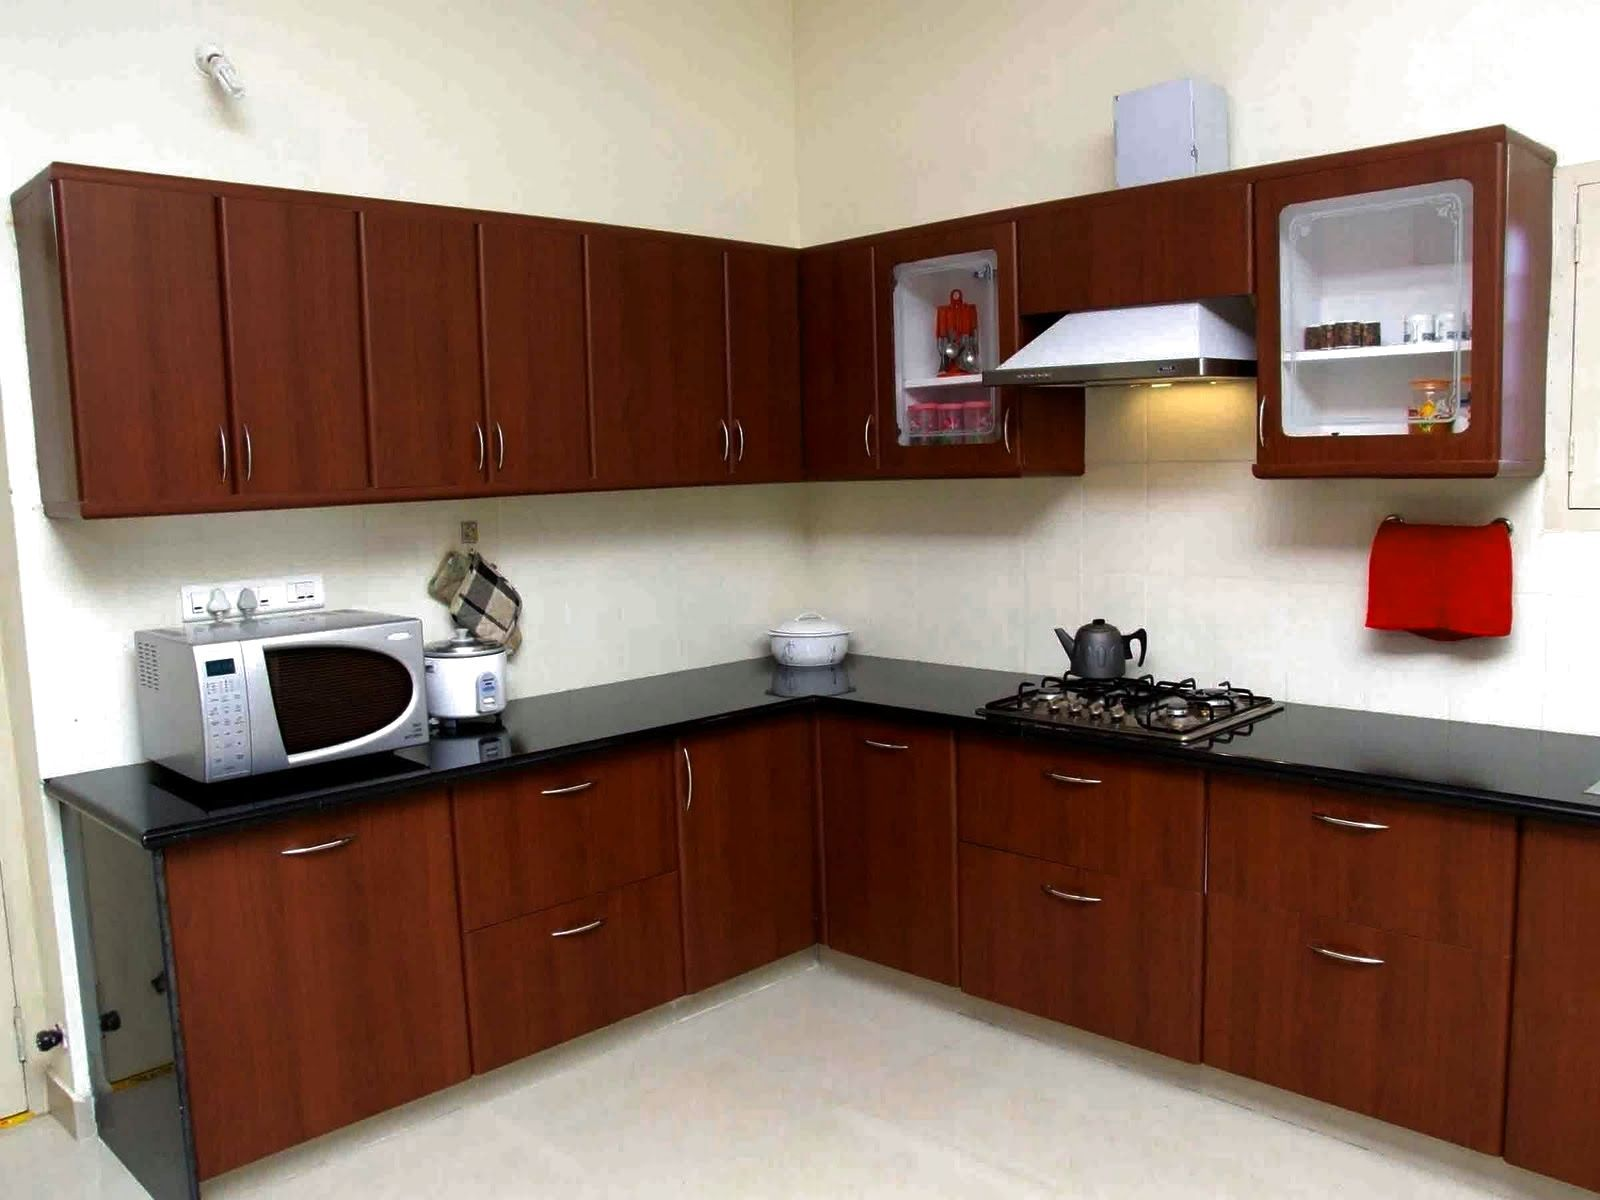 Modular Kitchen Cabinets Design India Kitchen Cupboard Designs Simple Kitchen Design Simple Kitchen Cabinets